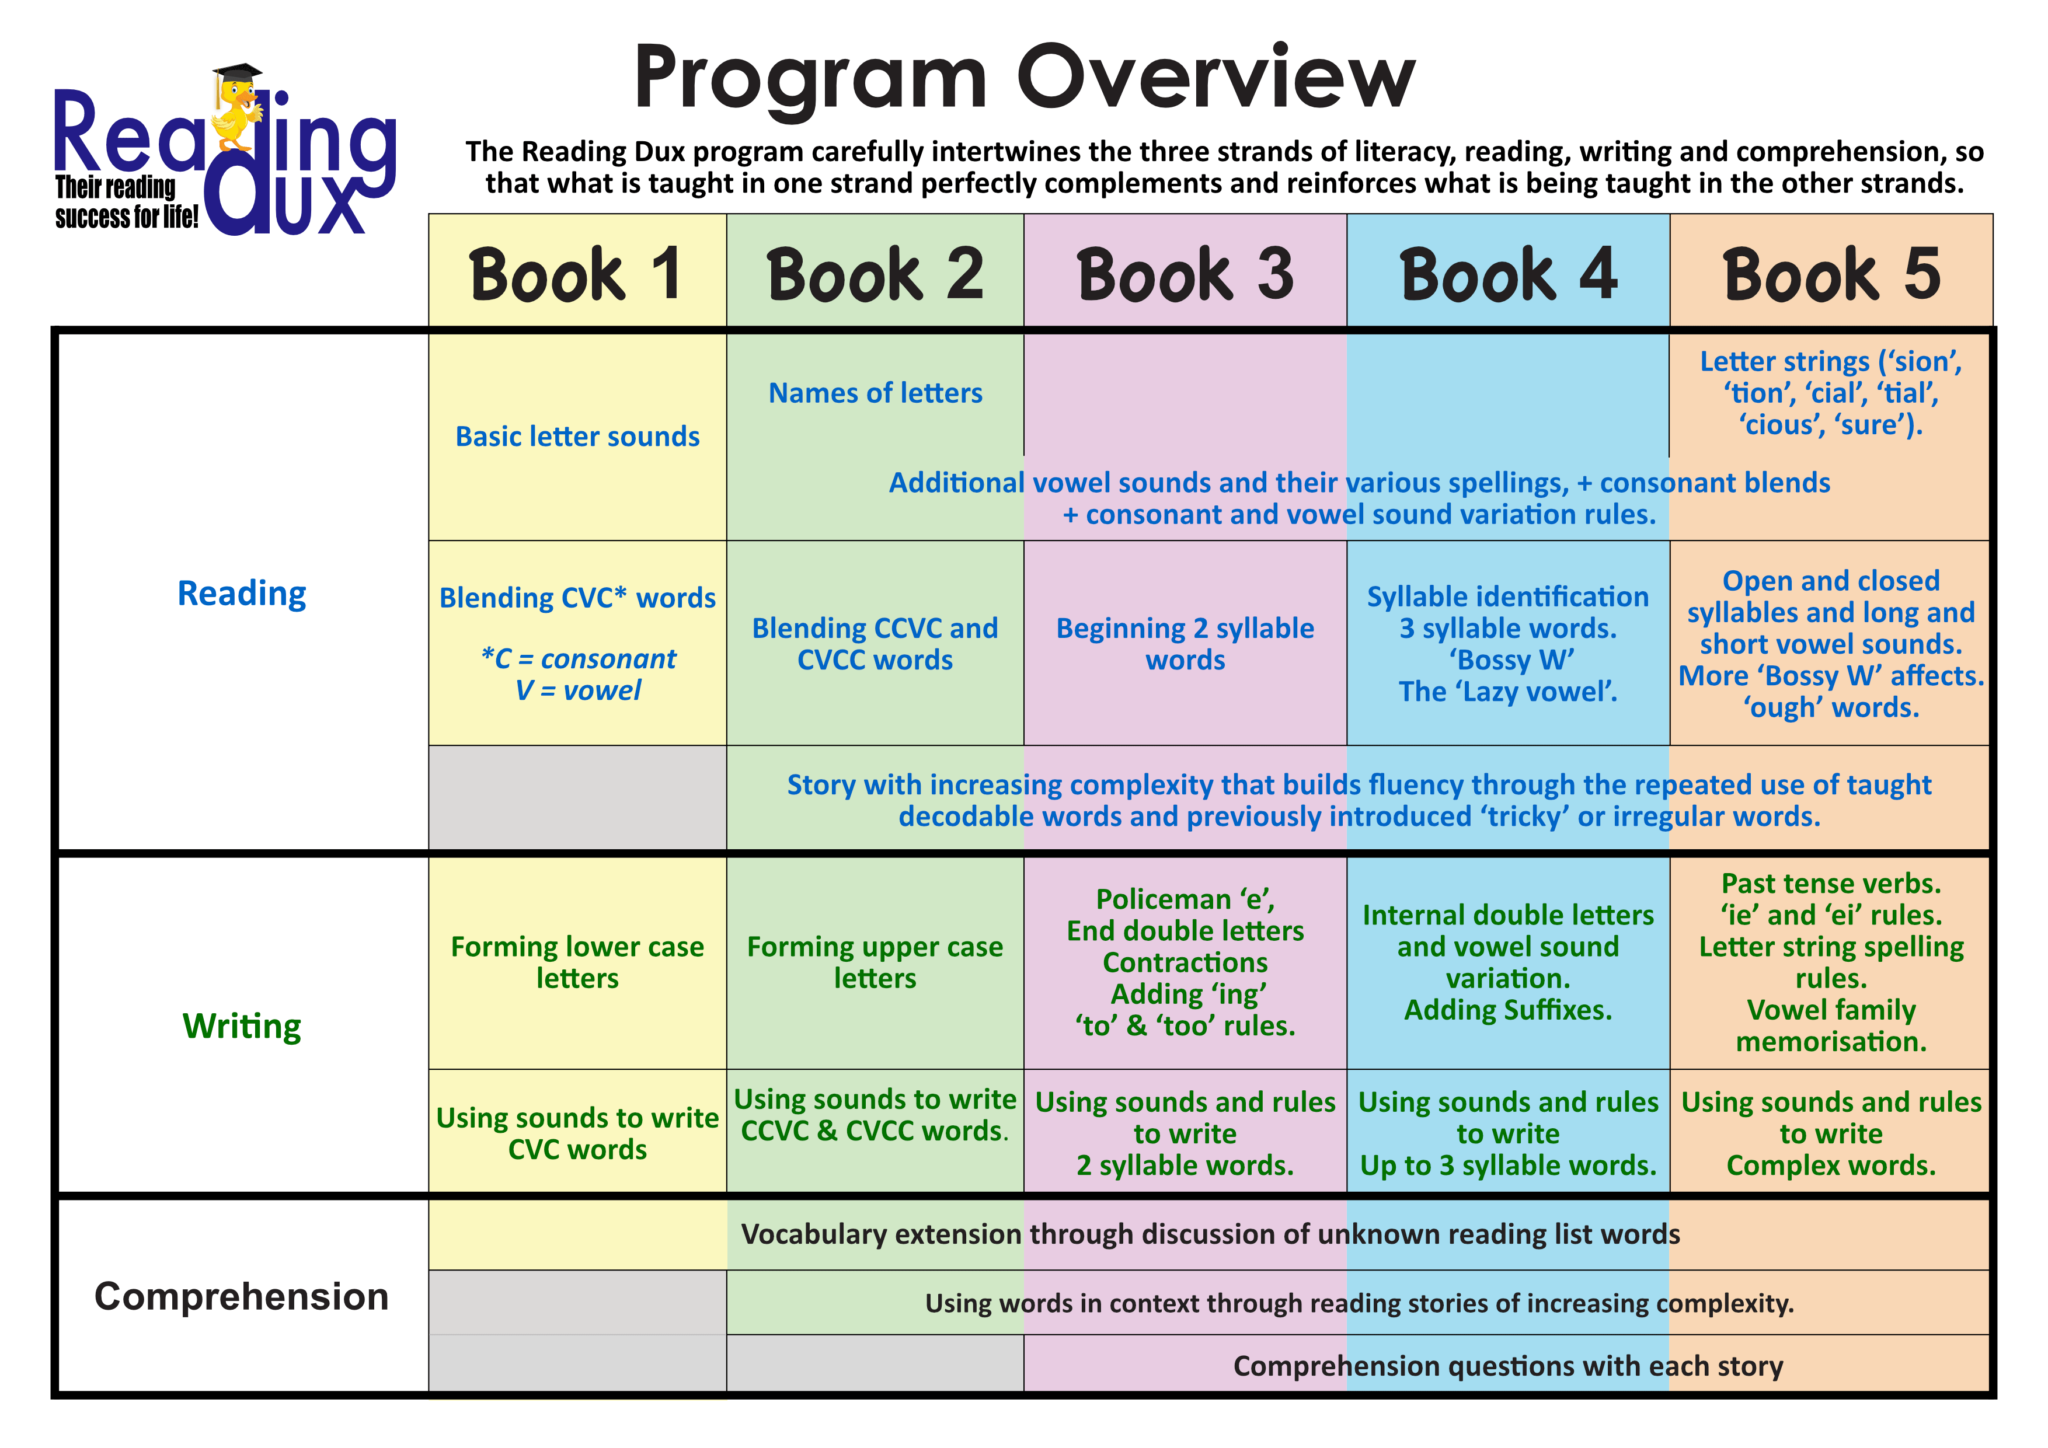 Program Outline The Reading Dux program carefully intertwines the three strands of literacy, reading, writing and comprehension, so that what is taught in one strand perfectly complements and reinforces what is being taught in the other strands.